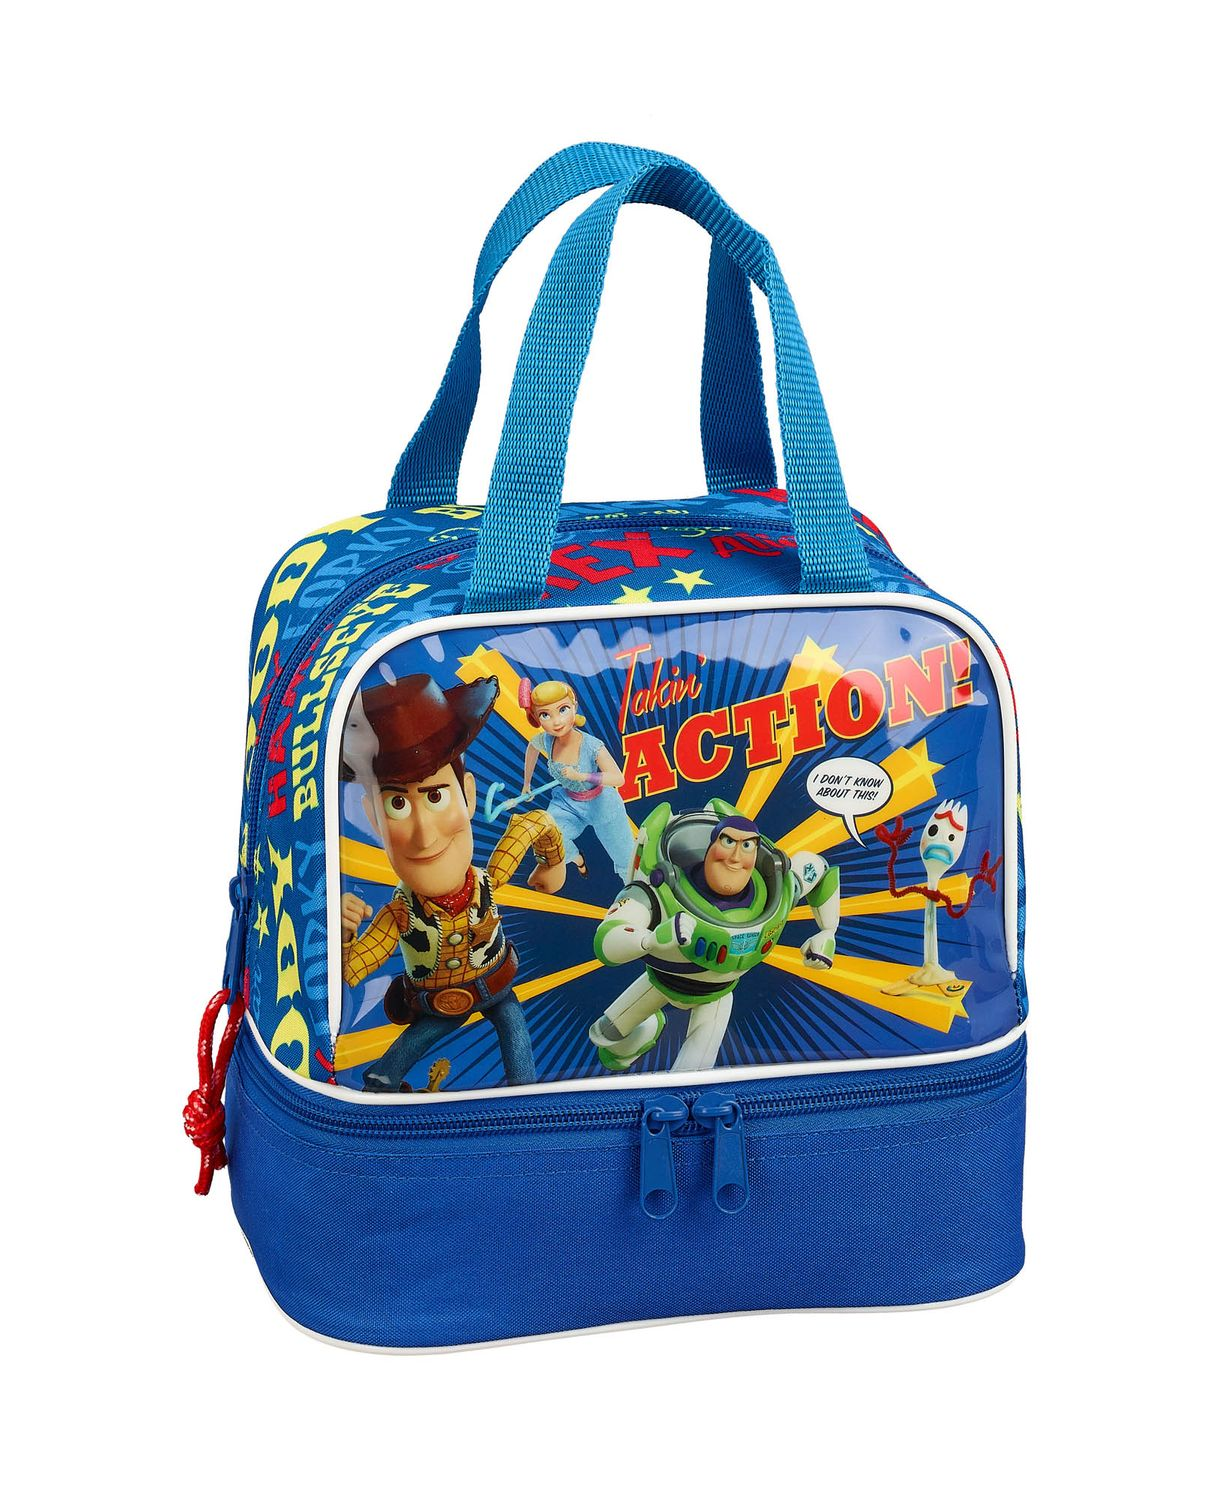 Toy Story 4 Lunch Bag Double – image 1